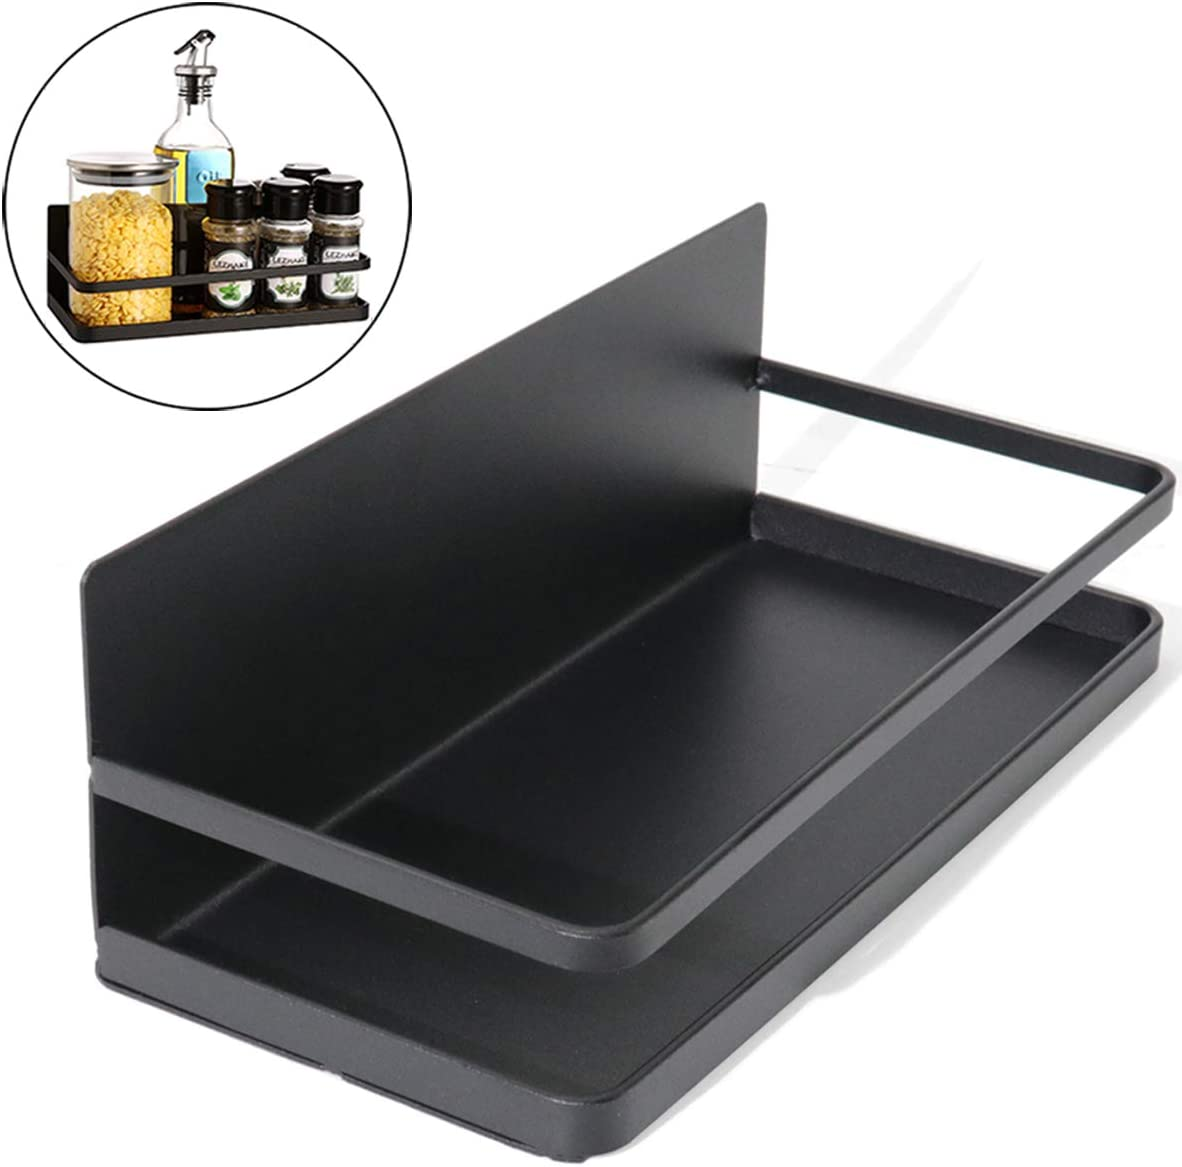 KOOTANS Magnetic Fridge Spice Rack Single Tier Spice Storage Shelf Organizer, Easy to Install on Side of Refrigerator, Hold Spices Jars Oils Small Things (Black, Single Tier Spice Rack)